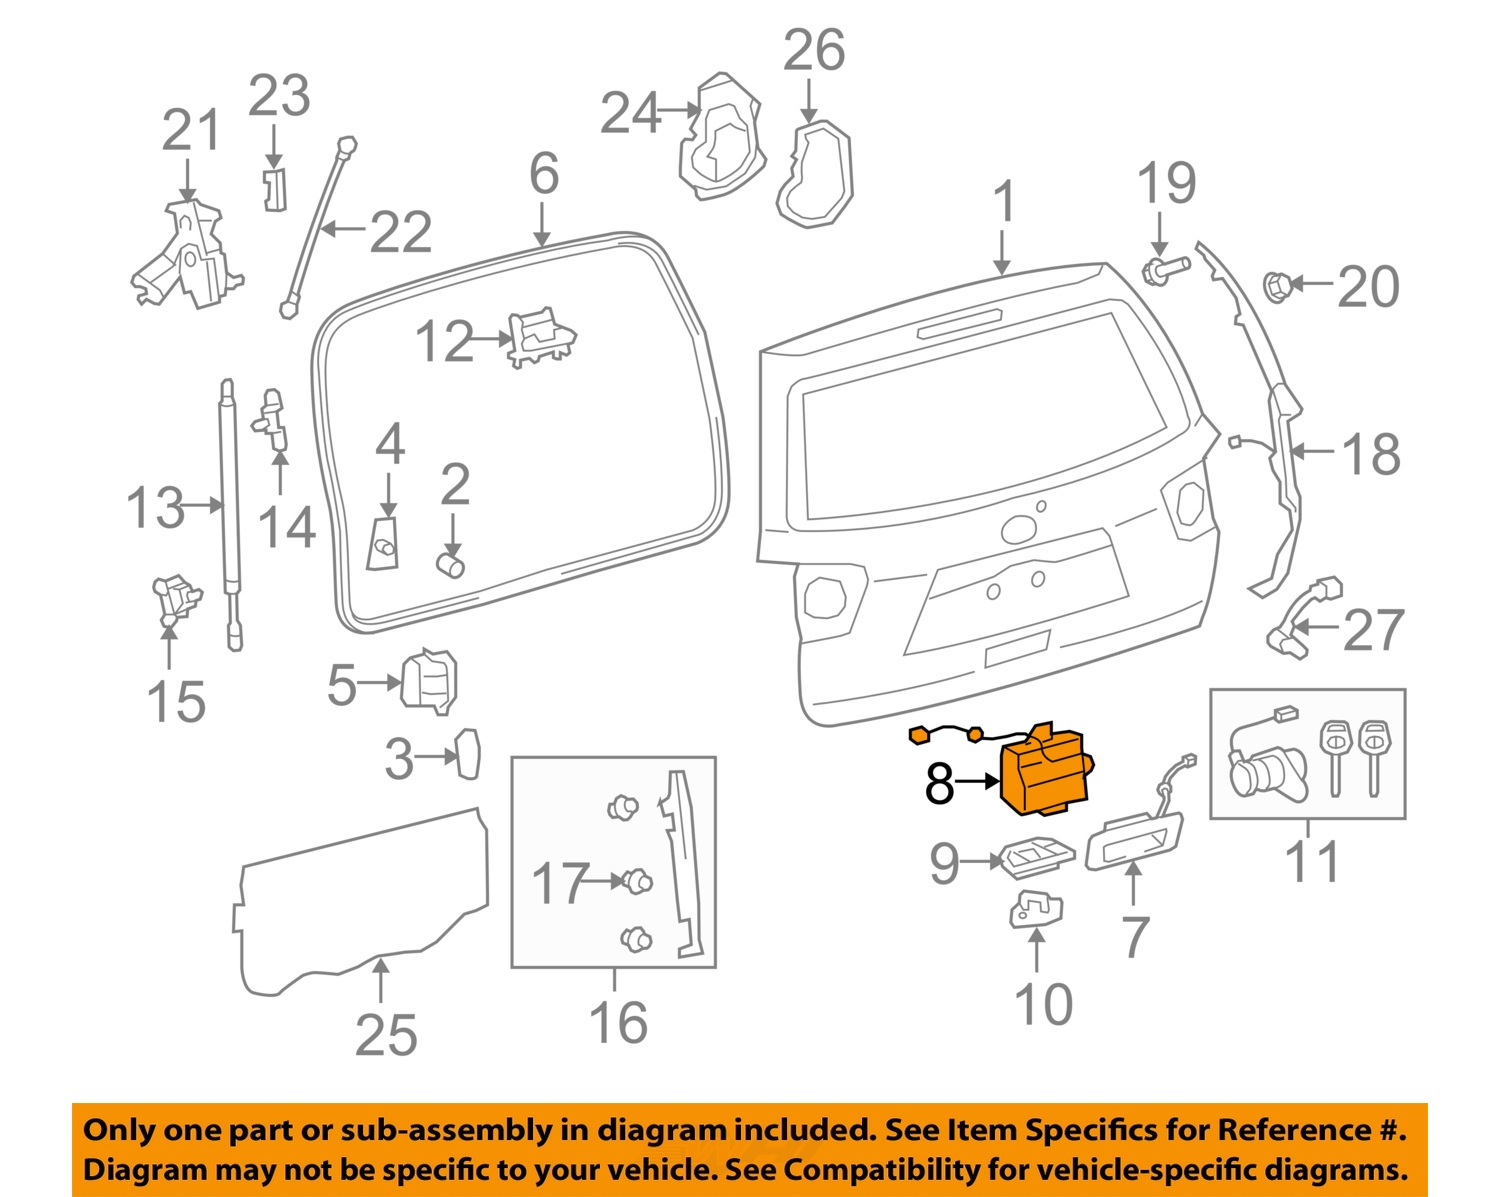 2003 toyota sequoia parts diagram cat 3 wiring telephone engine firing order t6 ballast